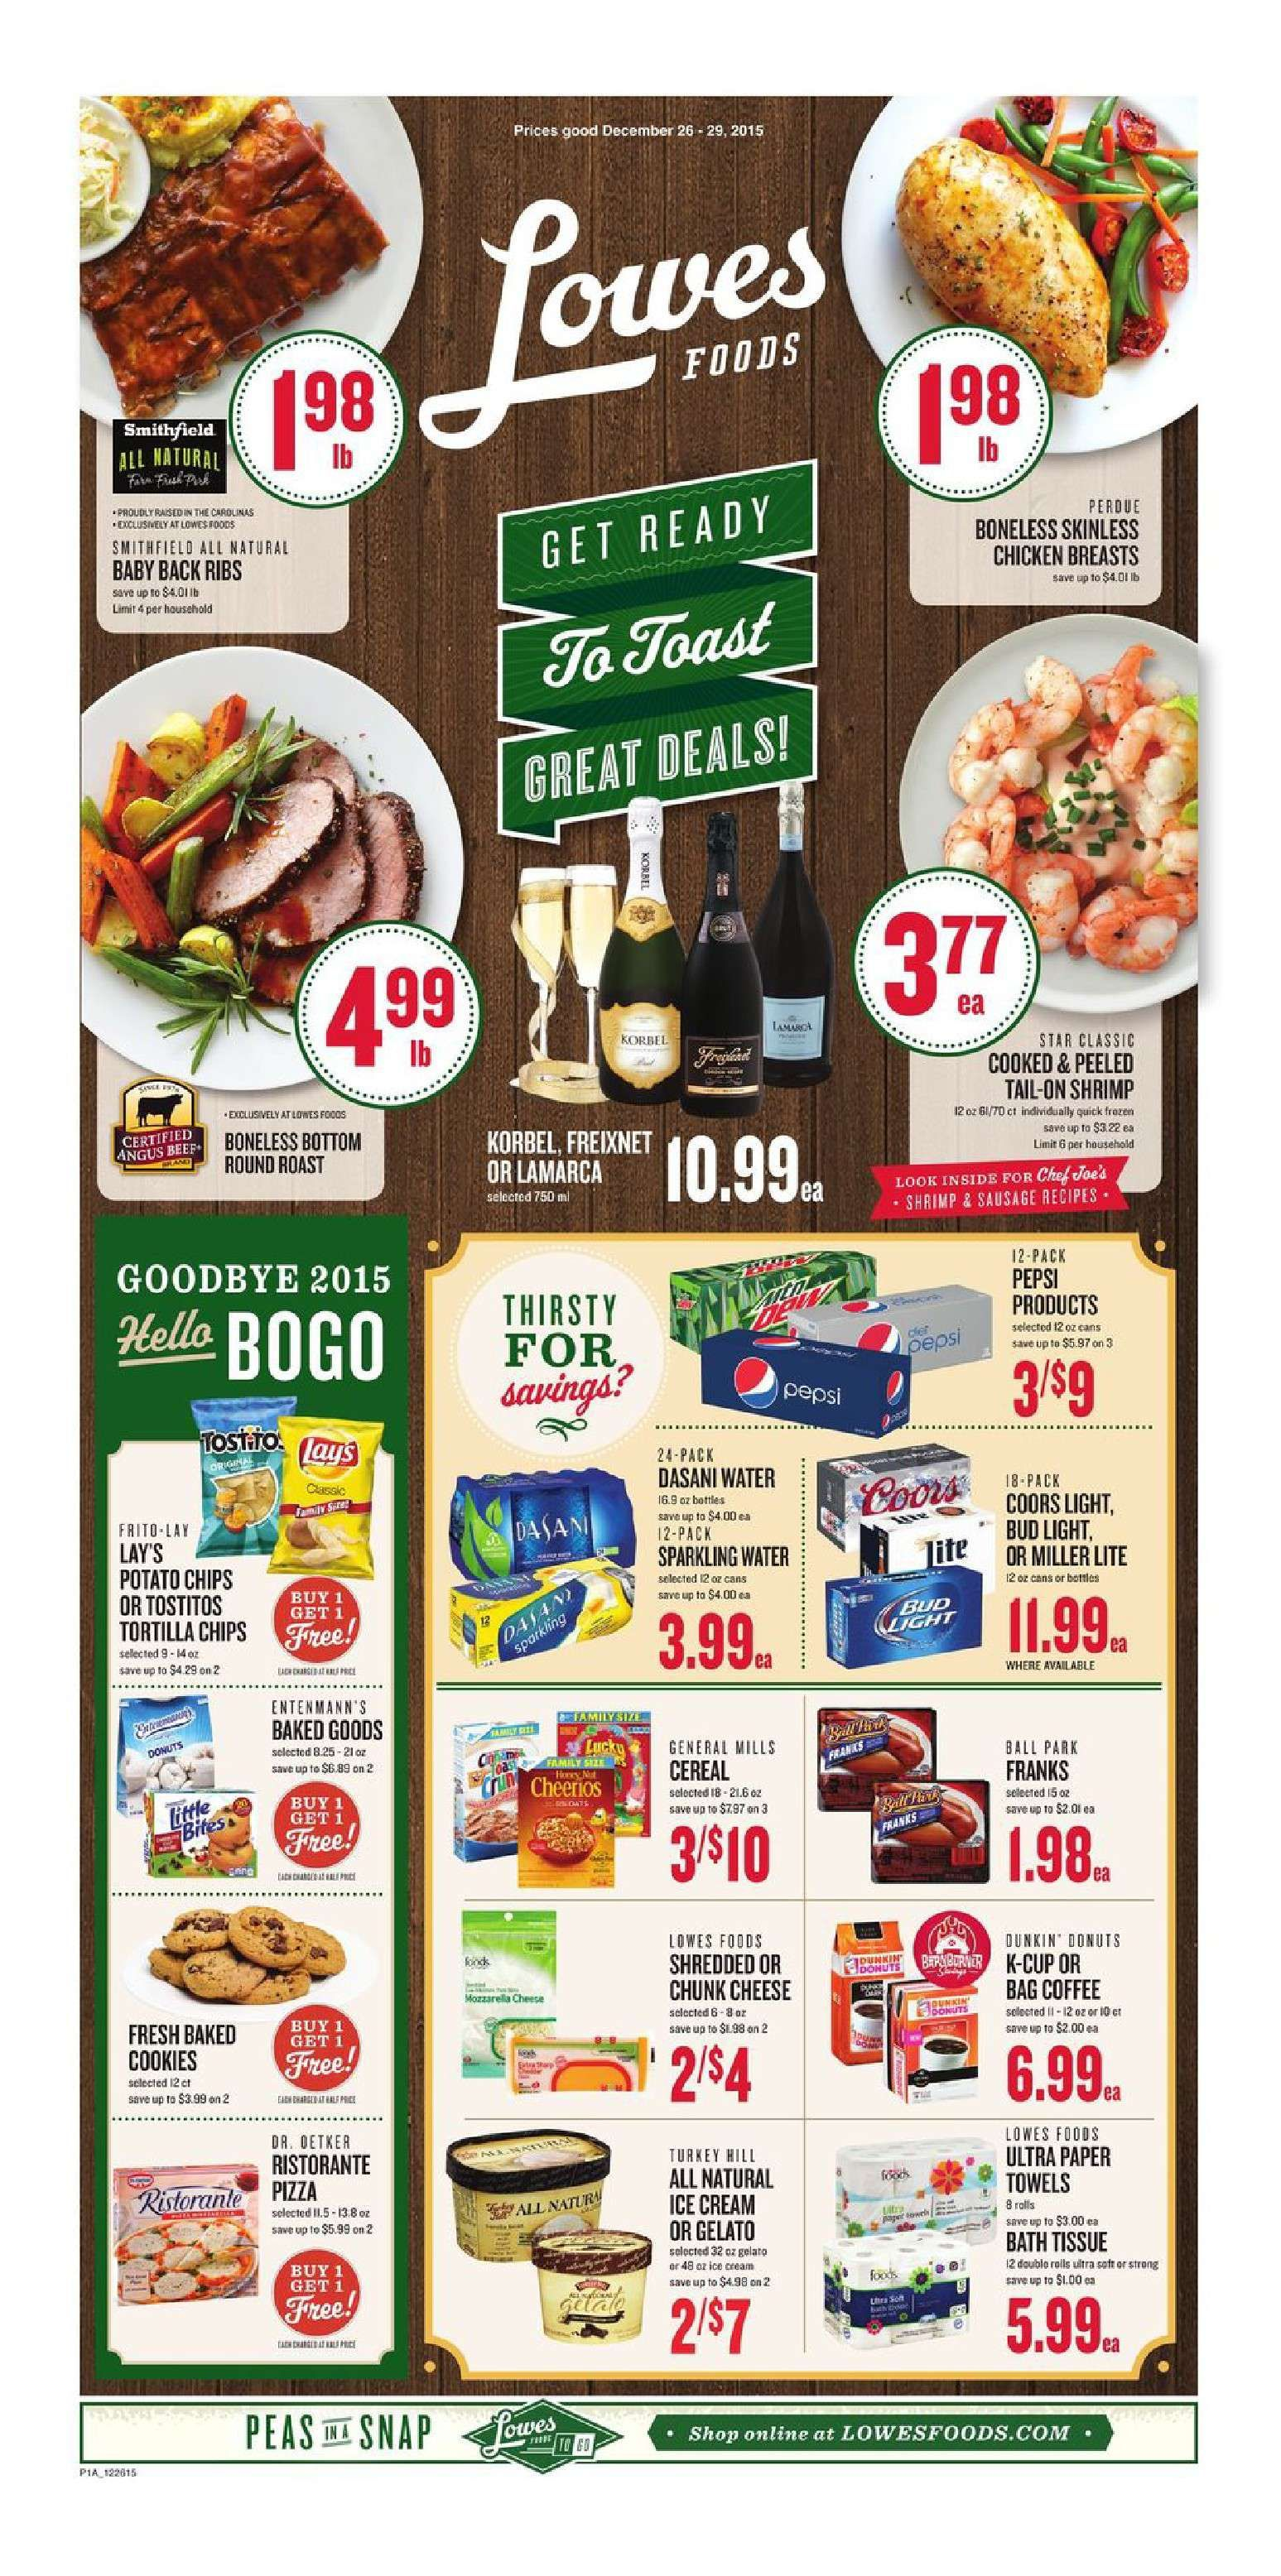 Lowes Weekly Ad December 26 29, 2015 http//www